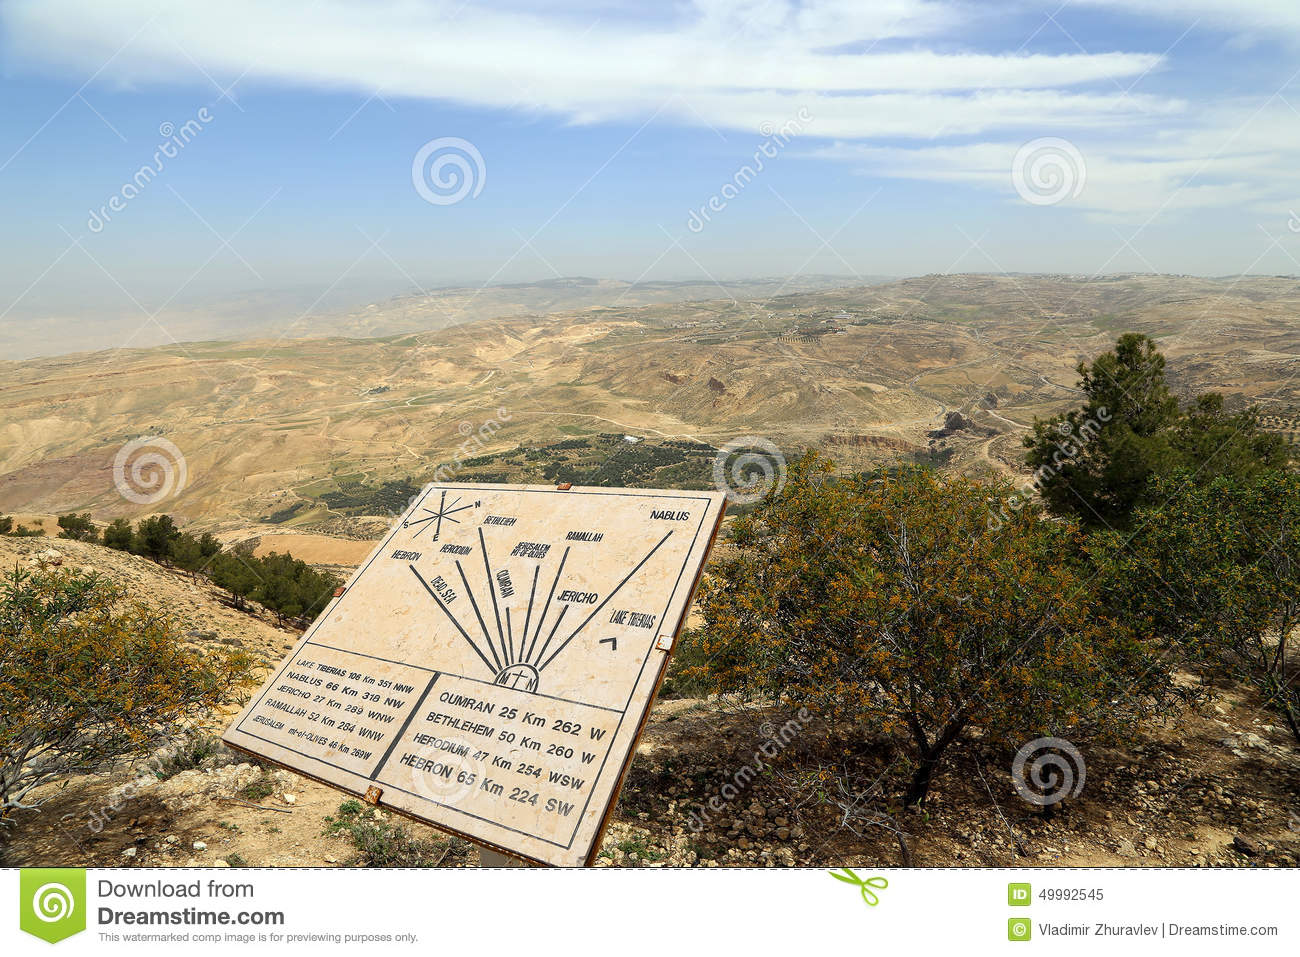 Plaque showing the distance from Mount Nebo to various locations, Jordan, Middle East